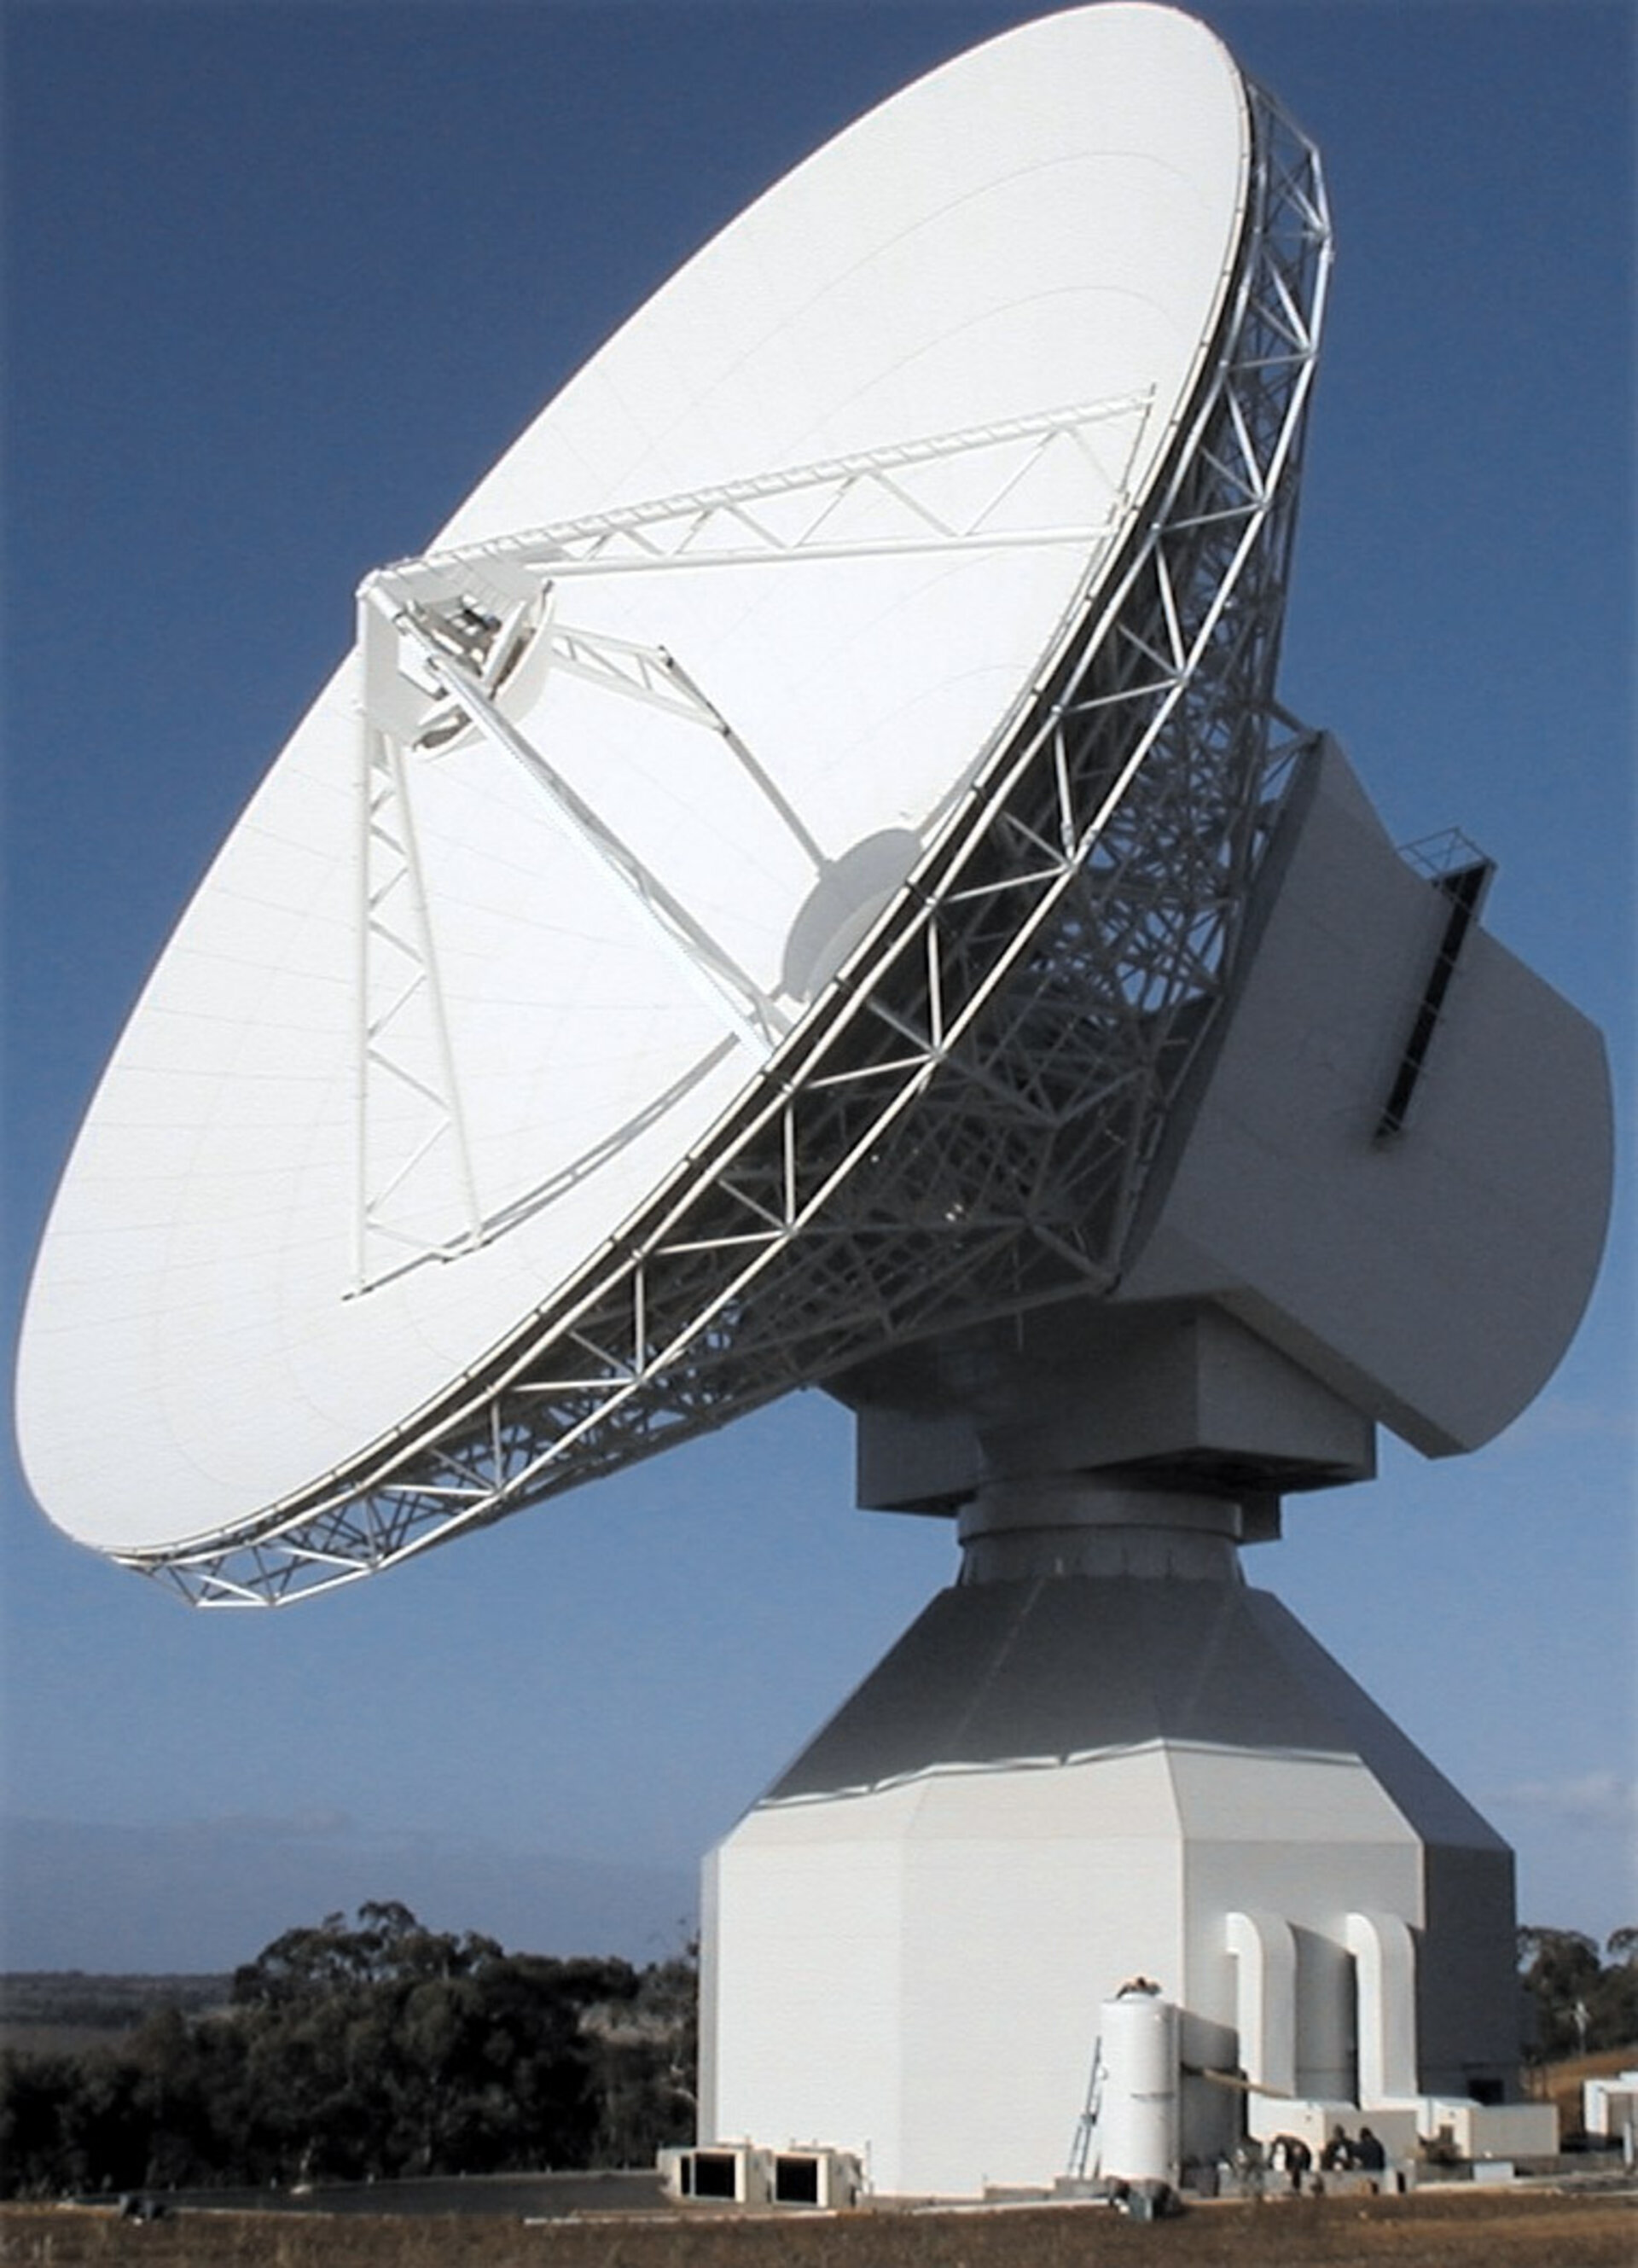 The antenna in New Norcia